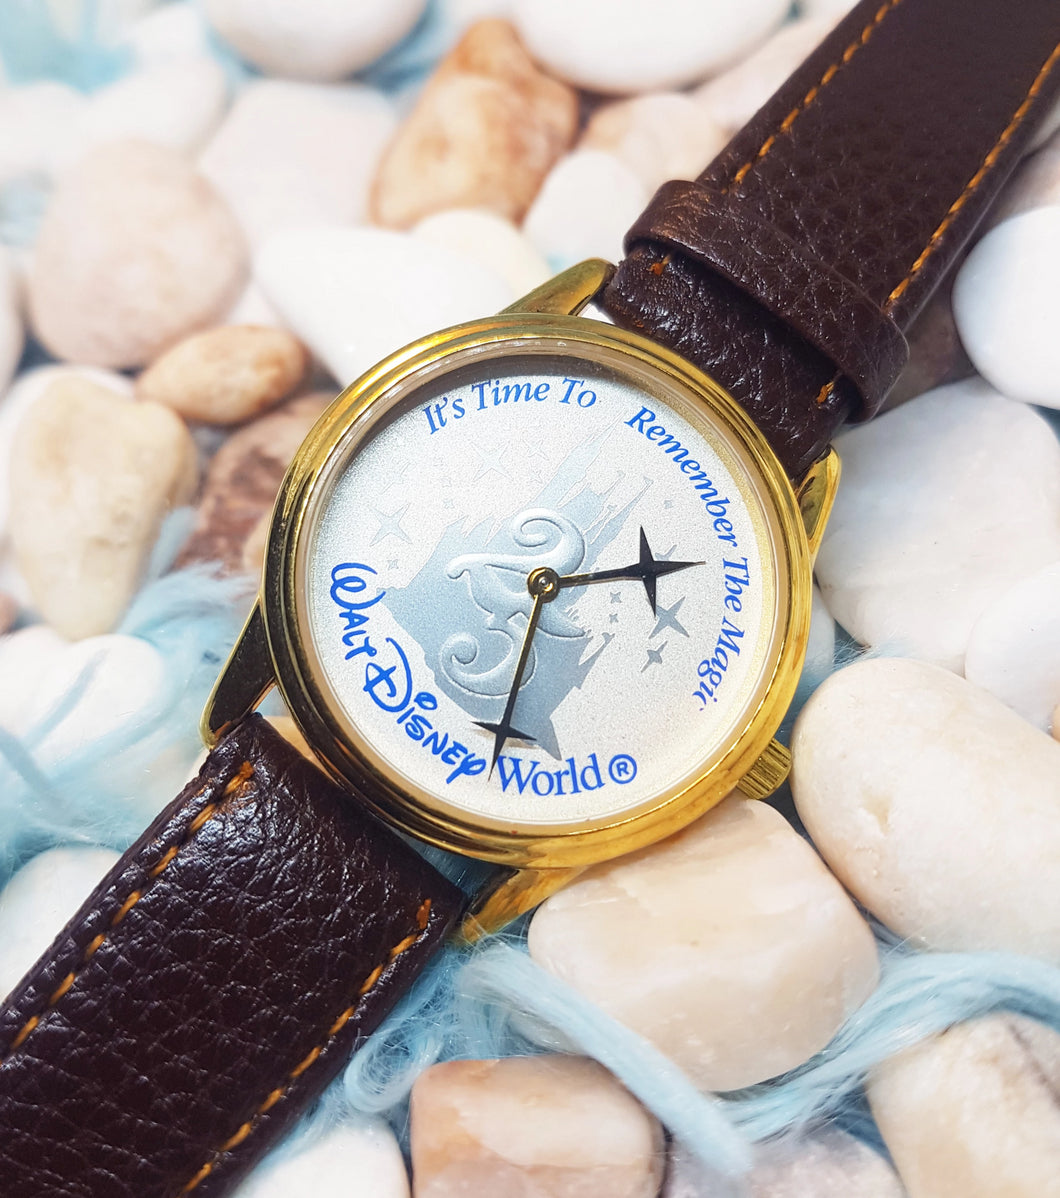 25 Years Anniversary Disney World Watch | It's Time To Remember The Magic - Vintage Radar